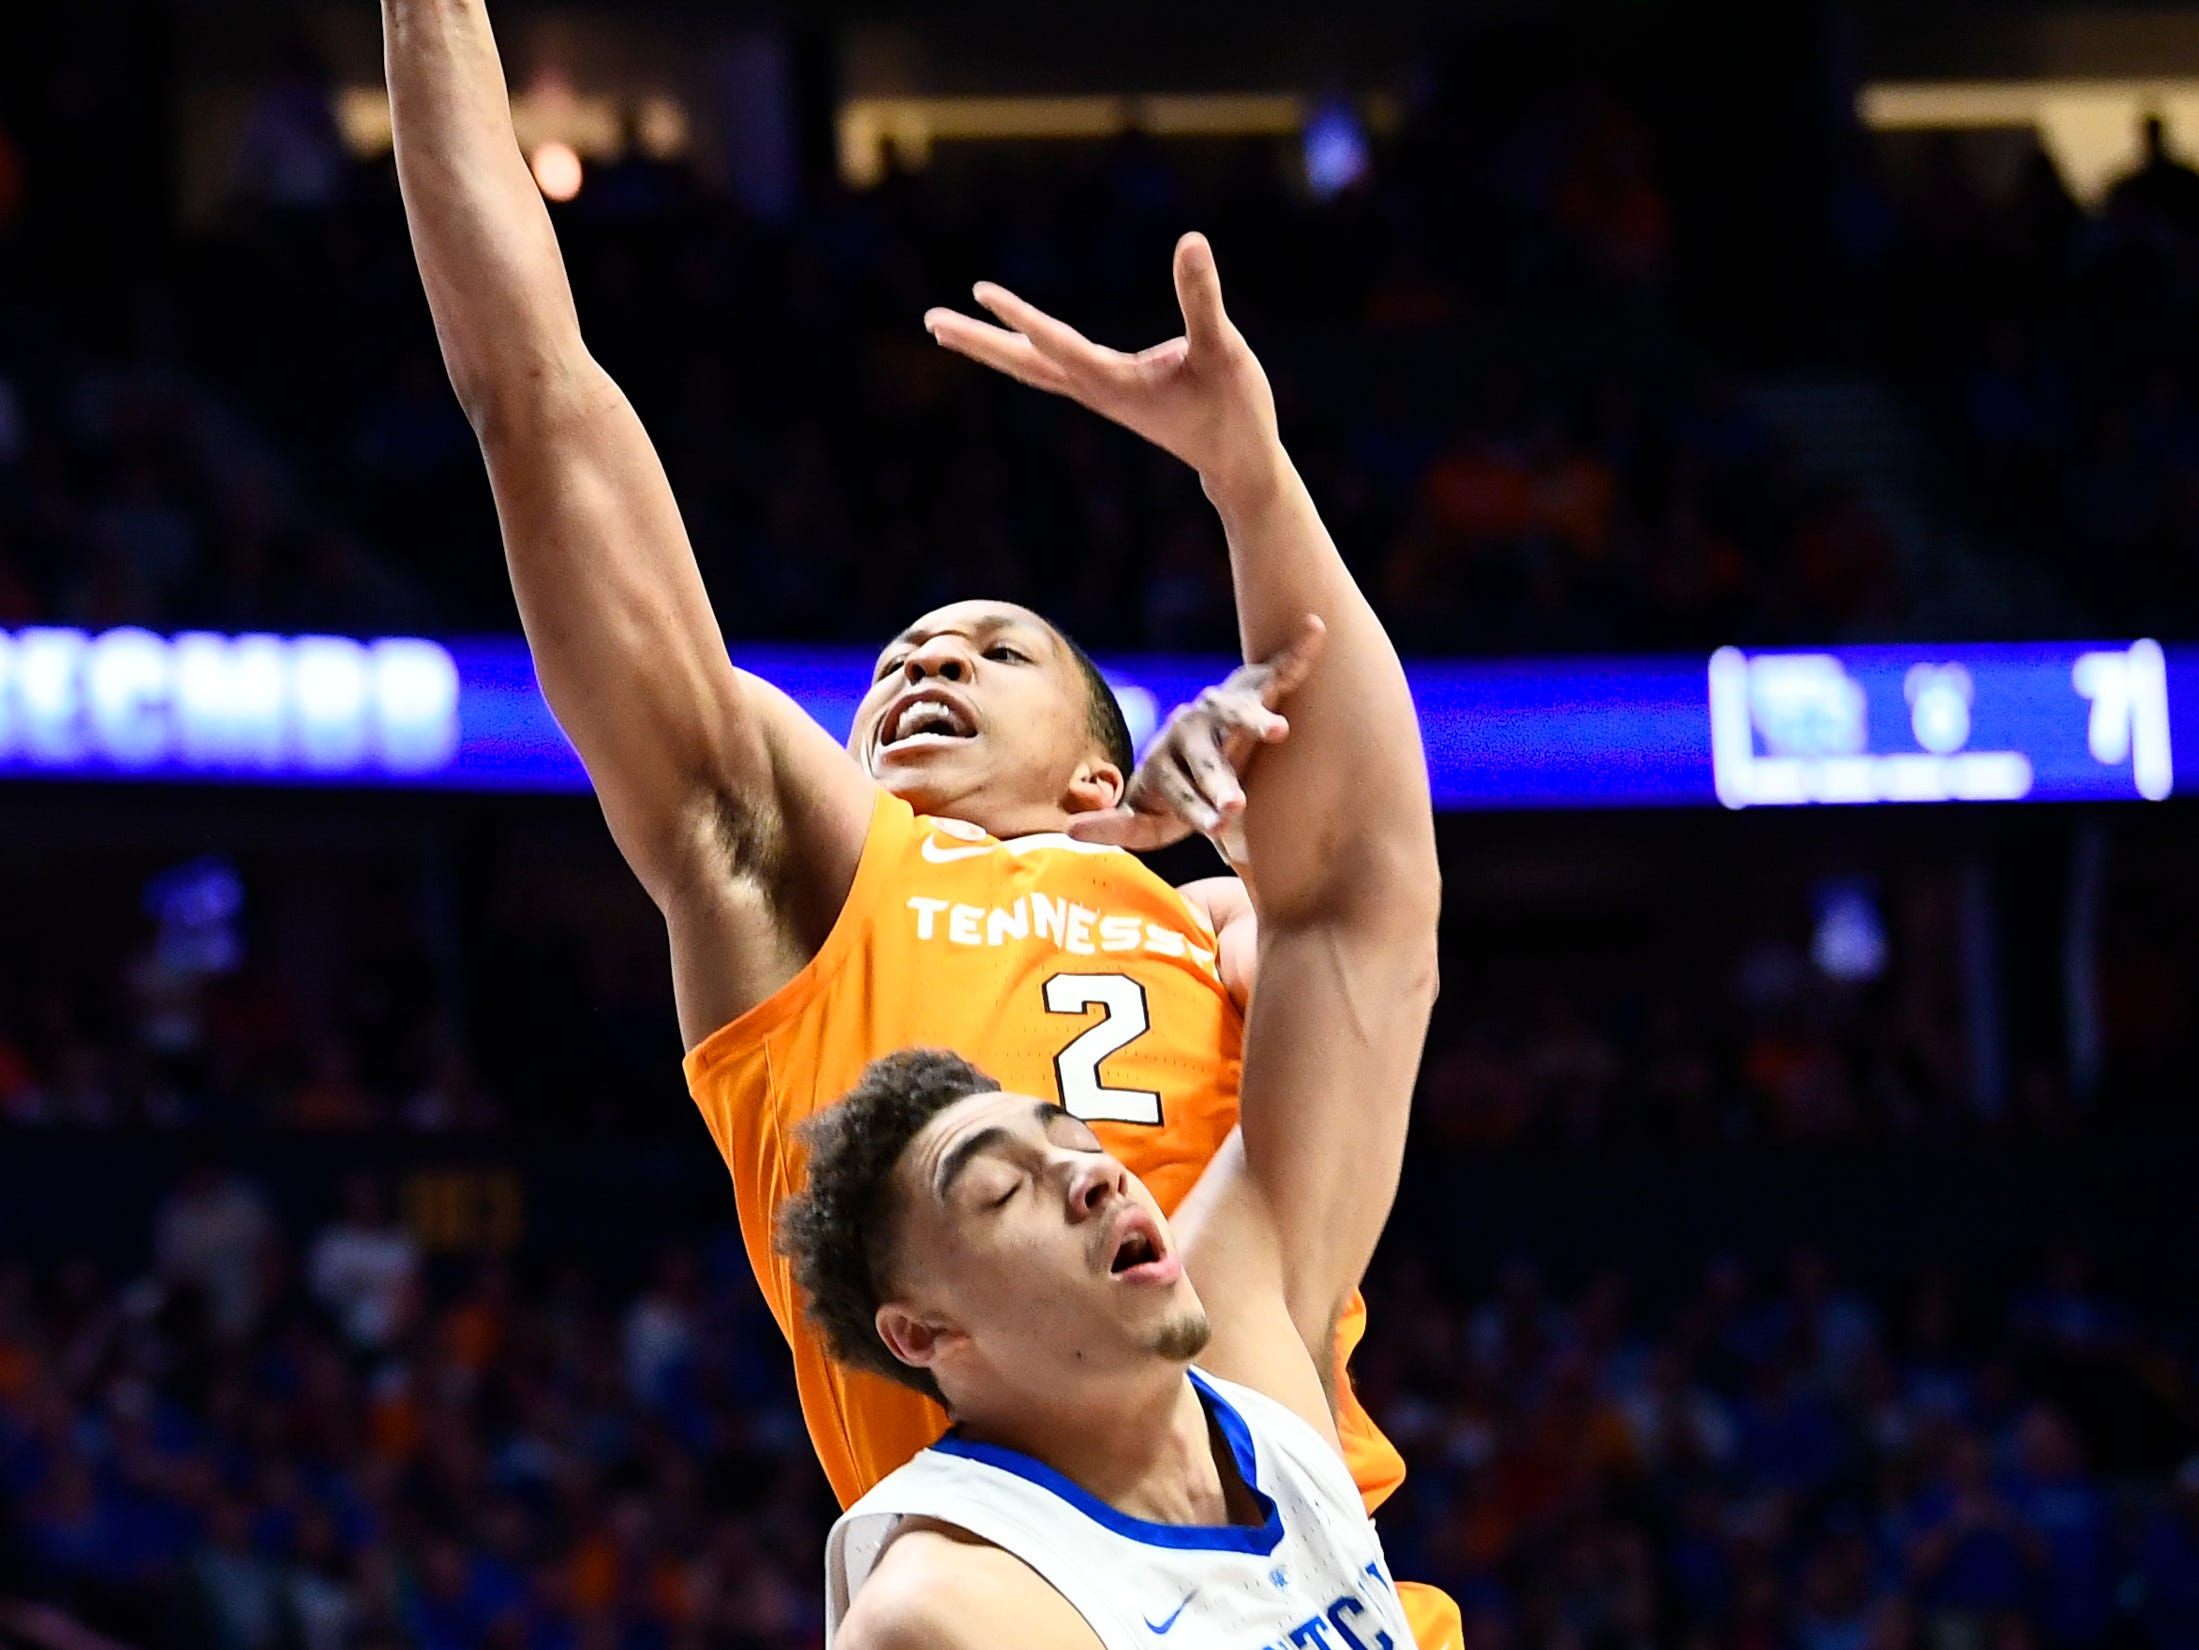 Tennessee forward Grant Williams (2) shoots over Kentucky forward Reid Travis (22) during the first half of the SEC Men's Basketball Tournament semifinal game at Bridgestone Arena in Nashville, Tenn., Saturday, March 16, 2019.